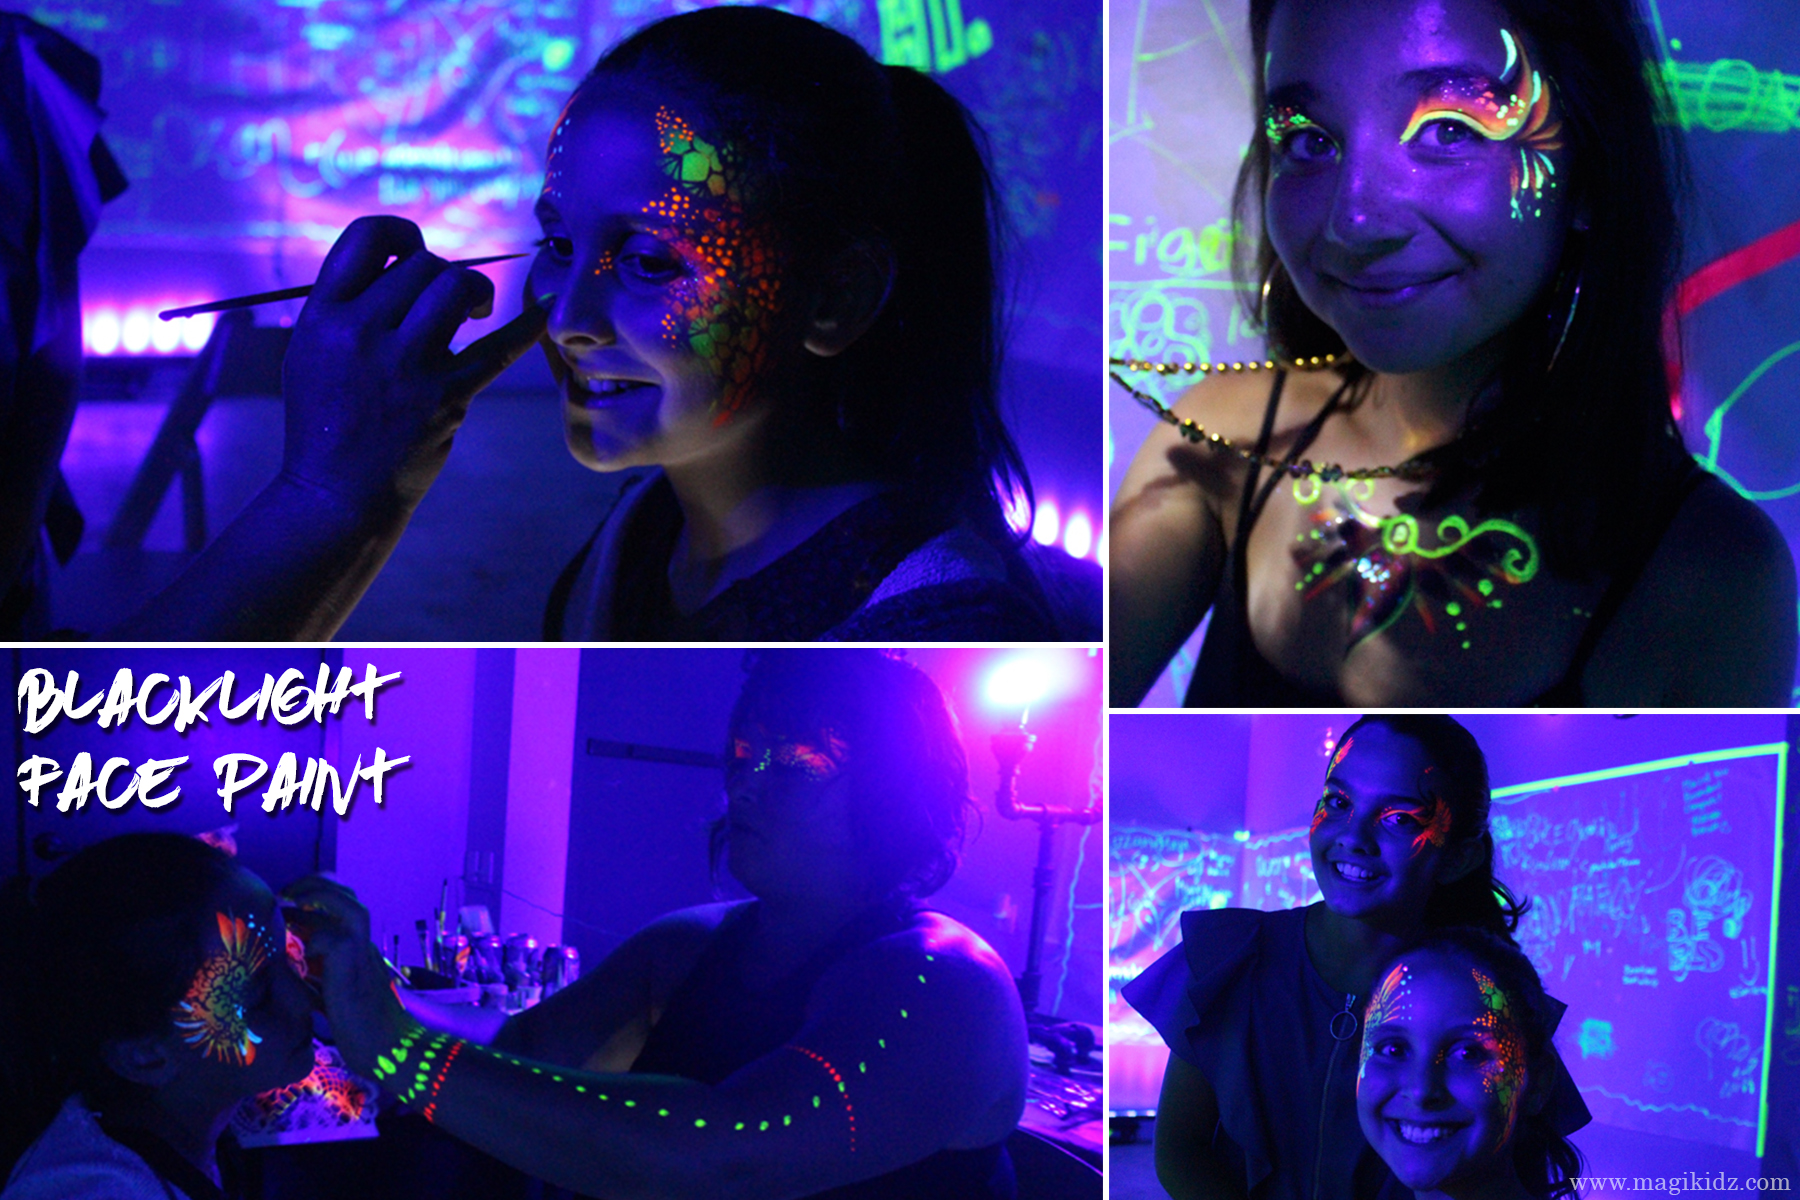 Blacklight Facepaint - MagiKidz